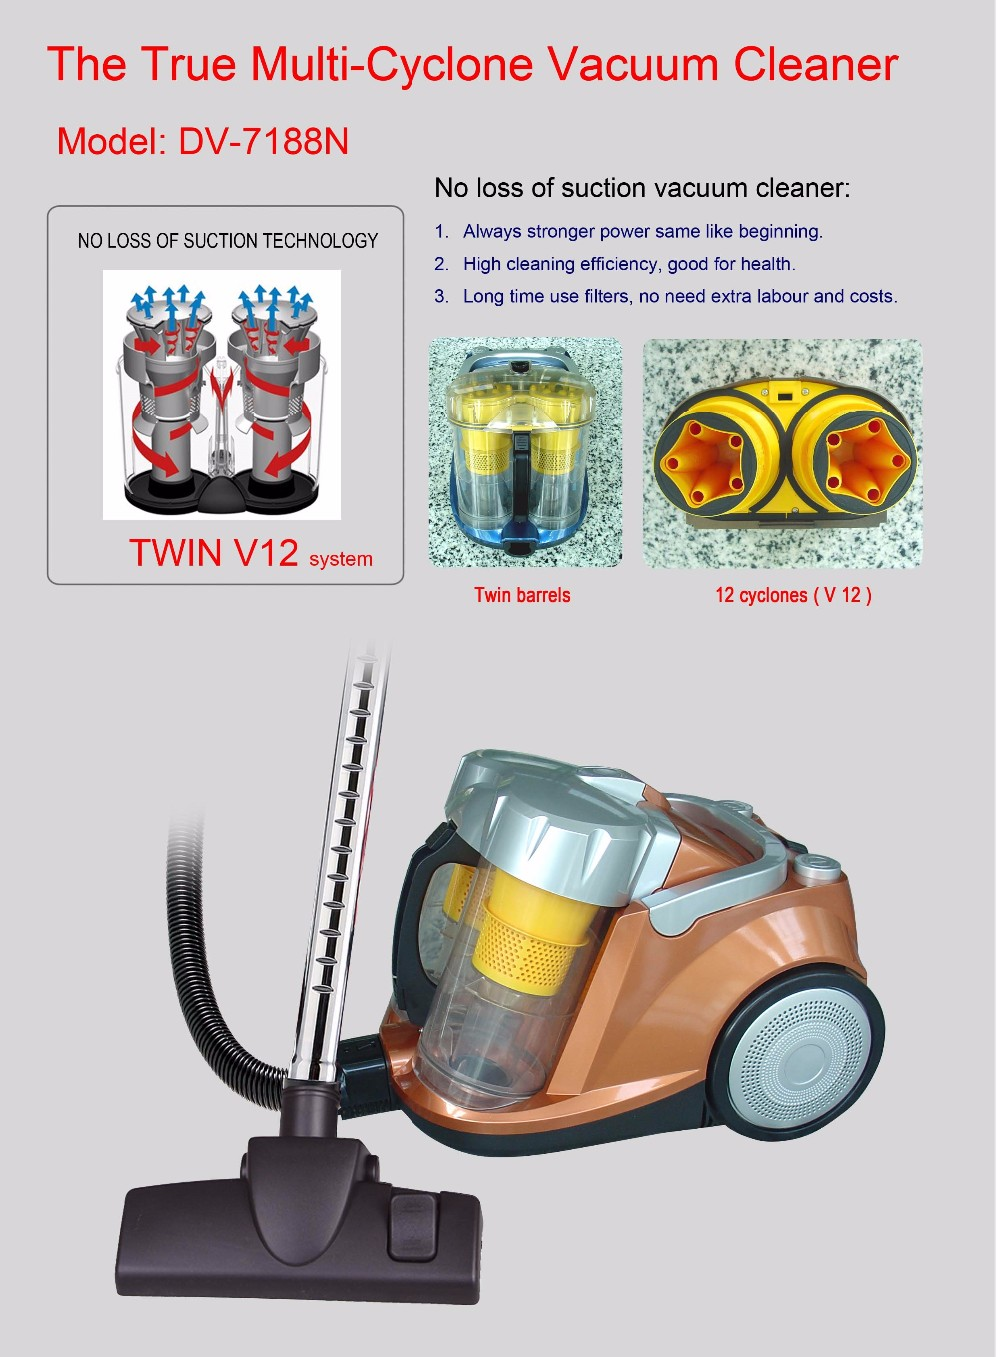 Canister Bagless Multi Cyclone Vacuum Cleaner